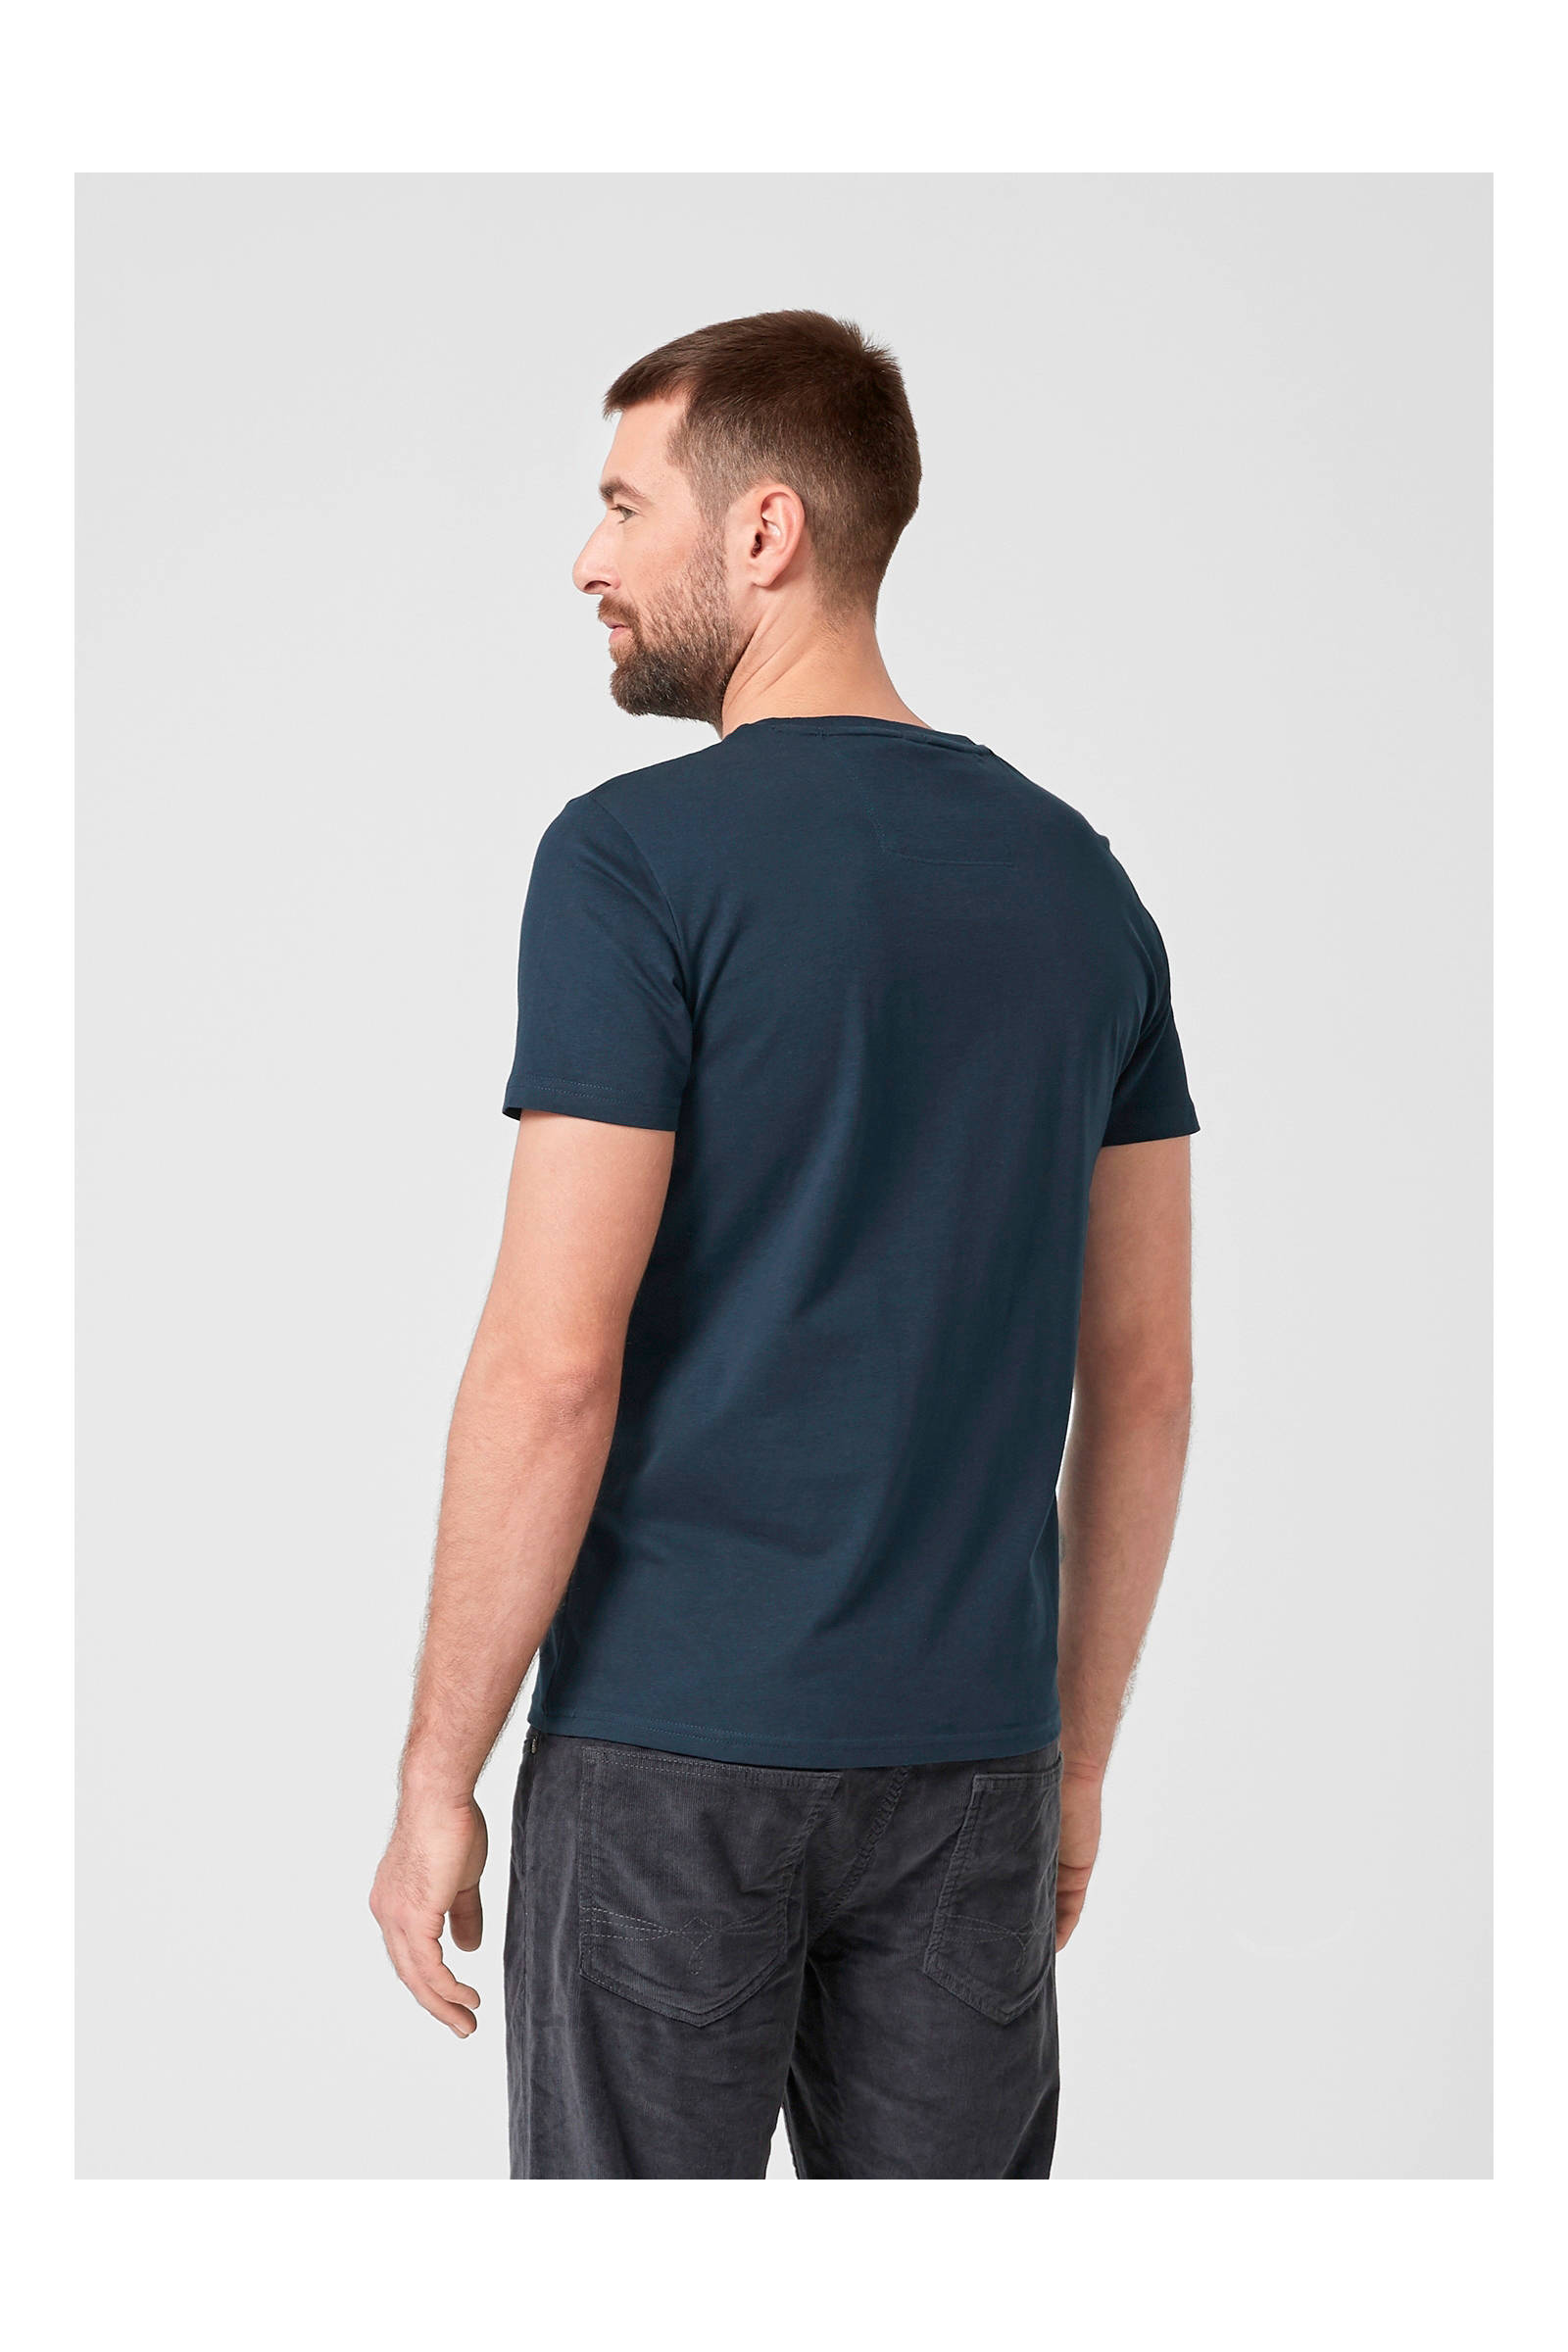 T s T Oliver shirt Oliver s Oliver s shirt T Aw8xRAn